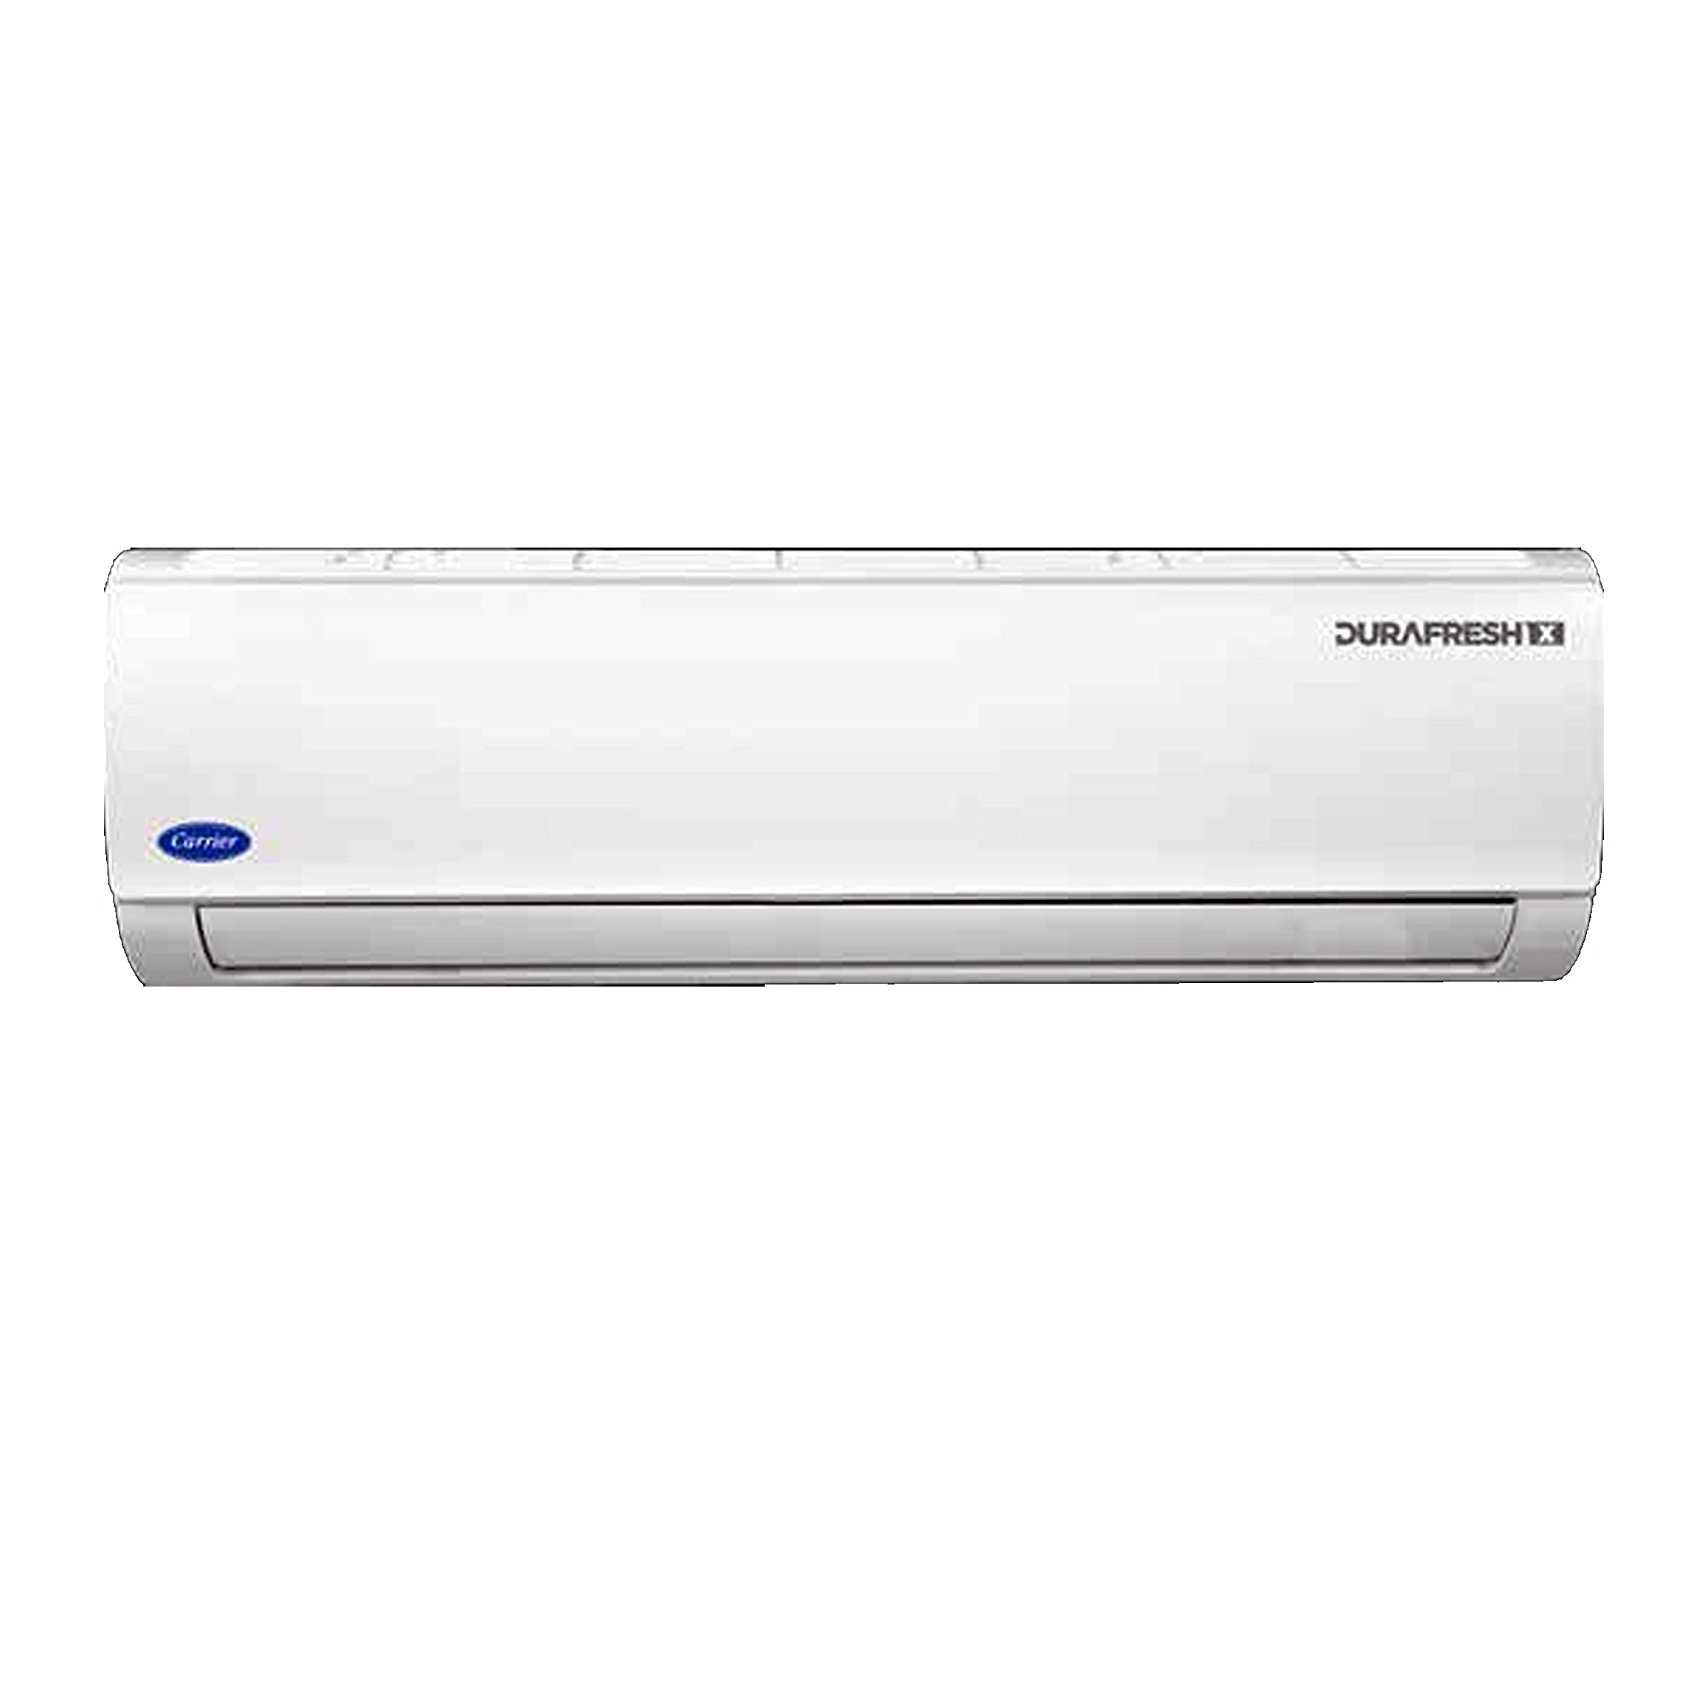 Carrier 24K Durafresh-X 2 Ton 3 Star AC